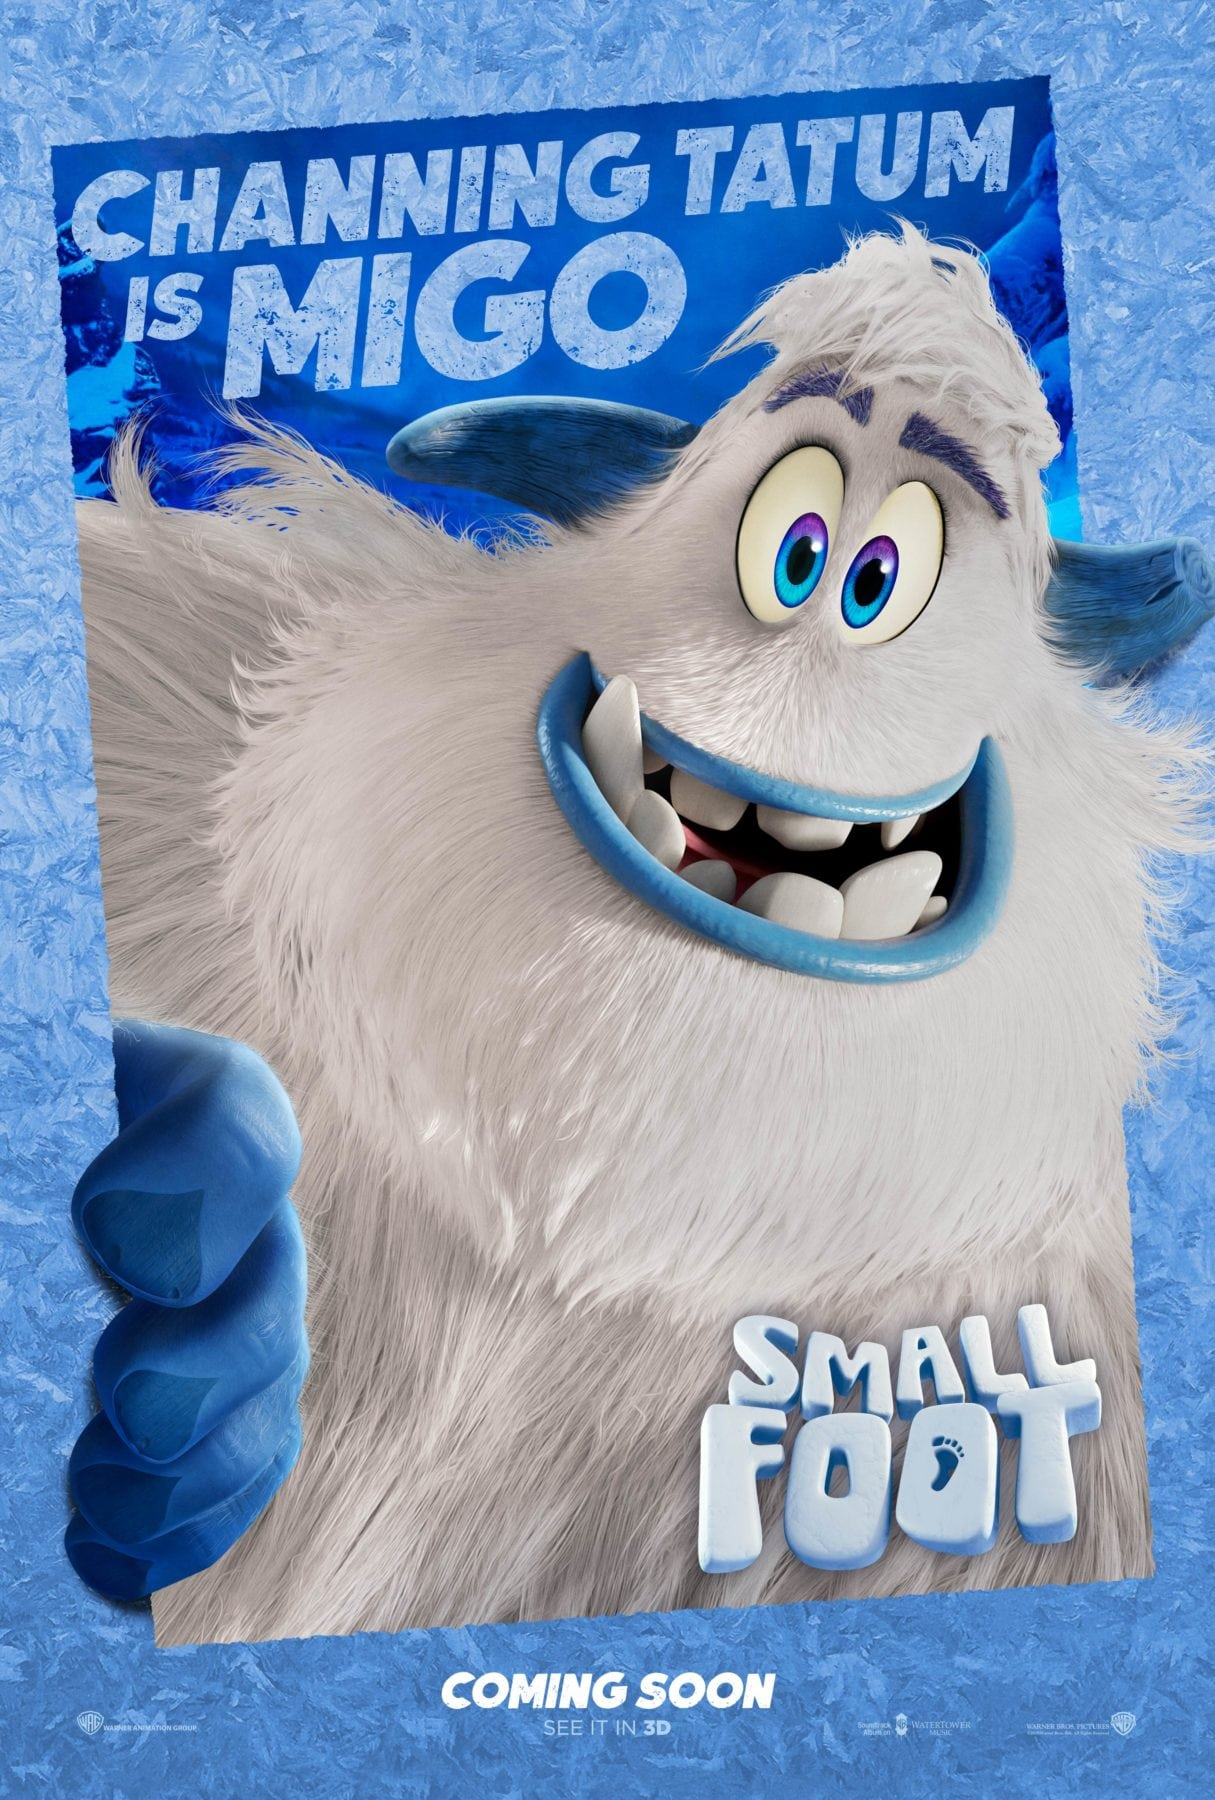 smallfoot gets a new trailer and character posters